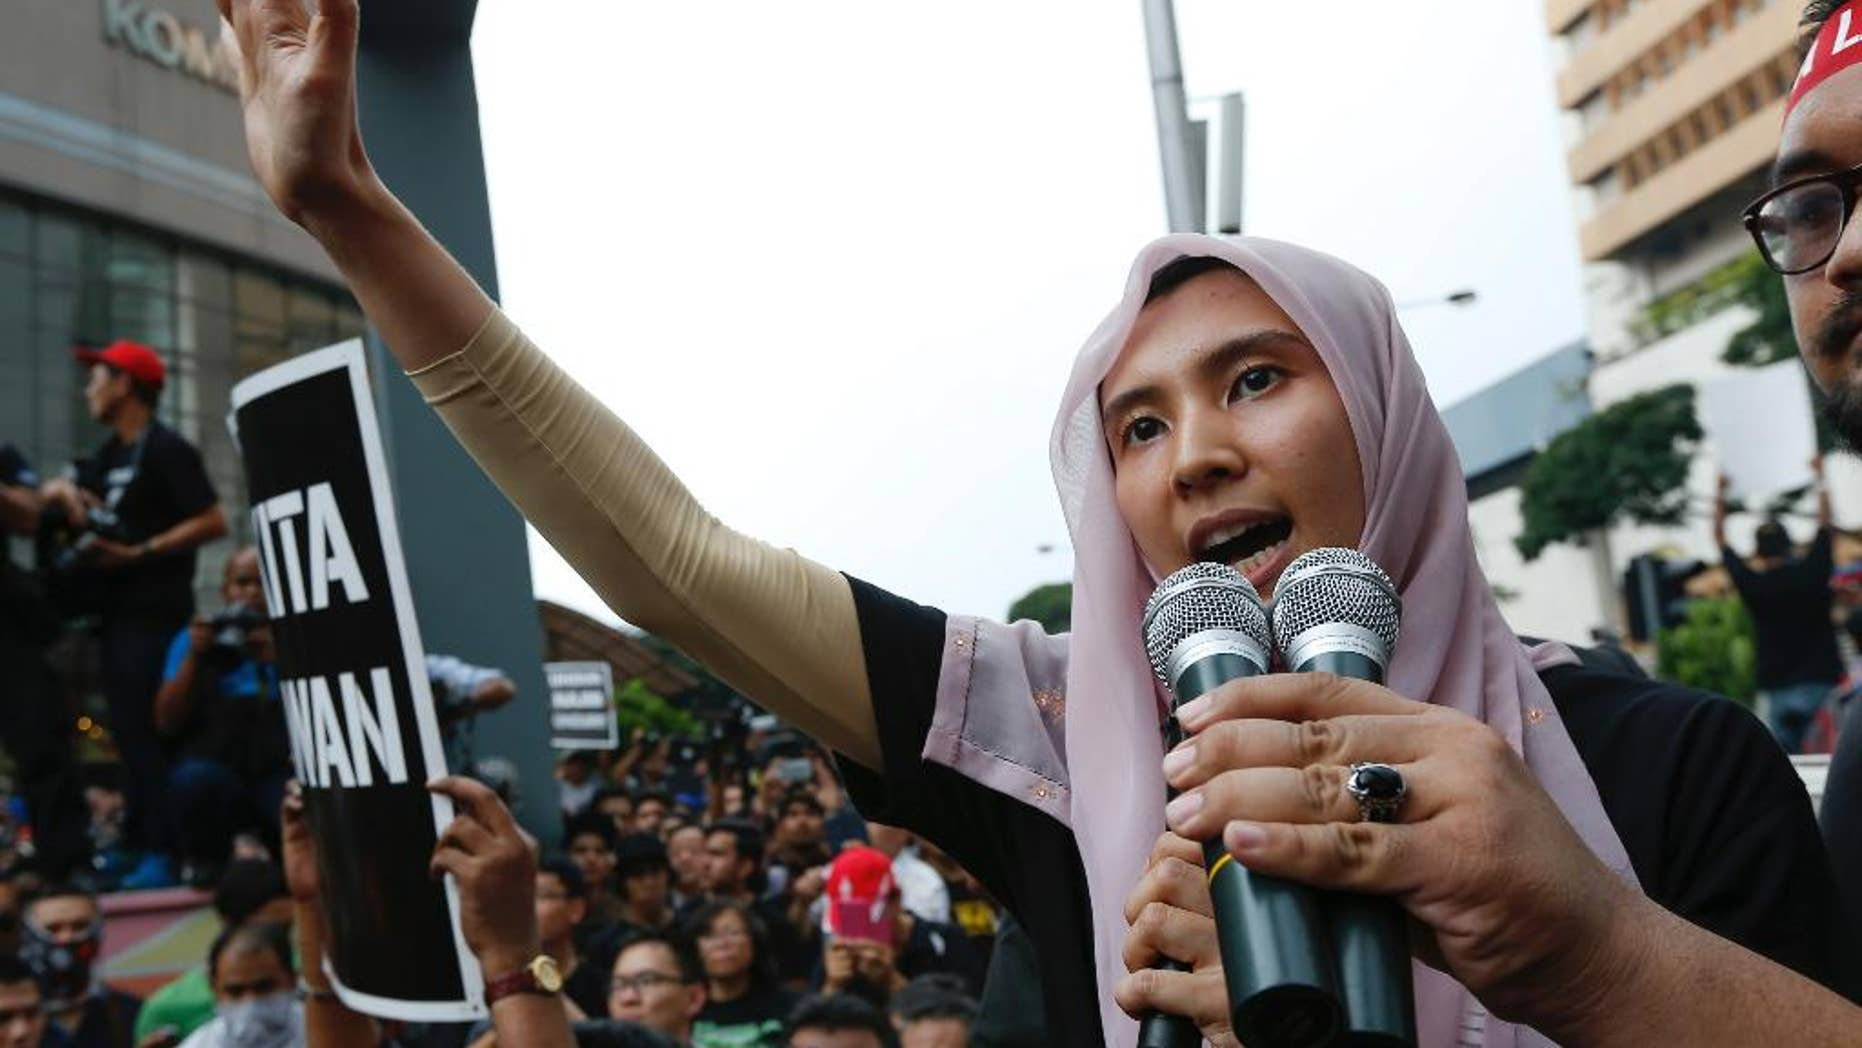 FILE - In this  Saturday, March 7, 2015 file photo, lawmaker and a vice-president of the People's Justice Party Nurul Izzah Anwar, daughter of oppression leader Anwar Ibrahim, speaks to protesters as they gather to demand the freedom of Anwar, in downtown Kuala Lumpur. Malaysian police arrested Monday, March 16, the eldest daughter of jailed Anwar Ibrahim for alleged sedition, a move slammed by critics as a clampdown on dissent. He began a 5-year prison sentence on Feb. 10 after being found guilty of sodomizing a former male aide in 2008. Anwar has maintained his innocence and claims he is a victim of a political vendetta by the government. (AP Photo/Vincent Thian, File)